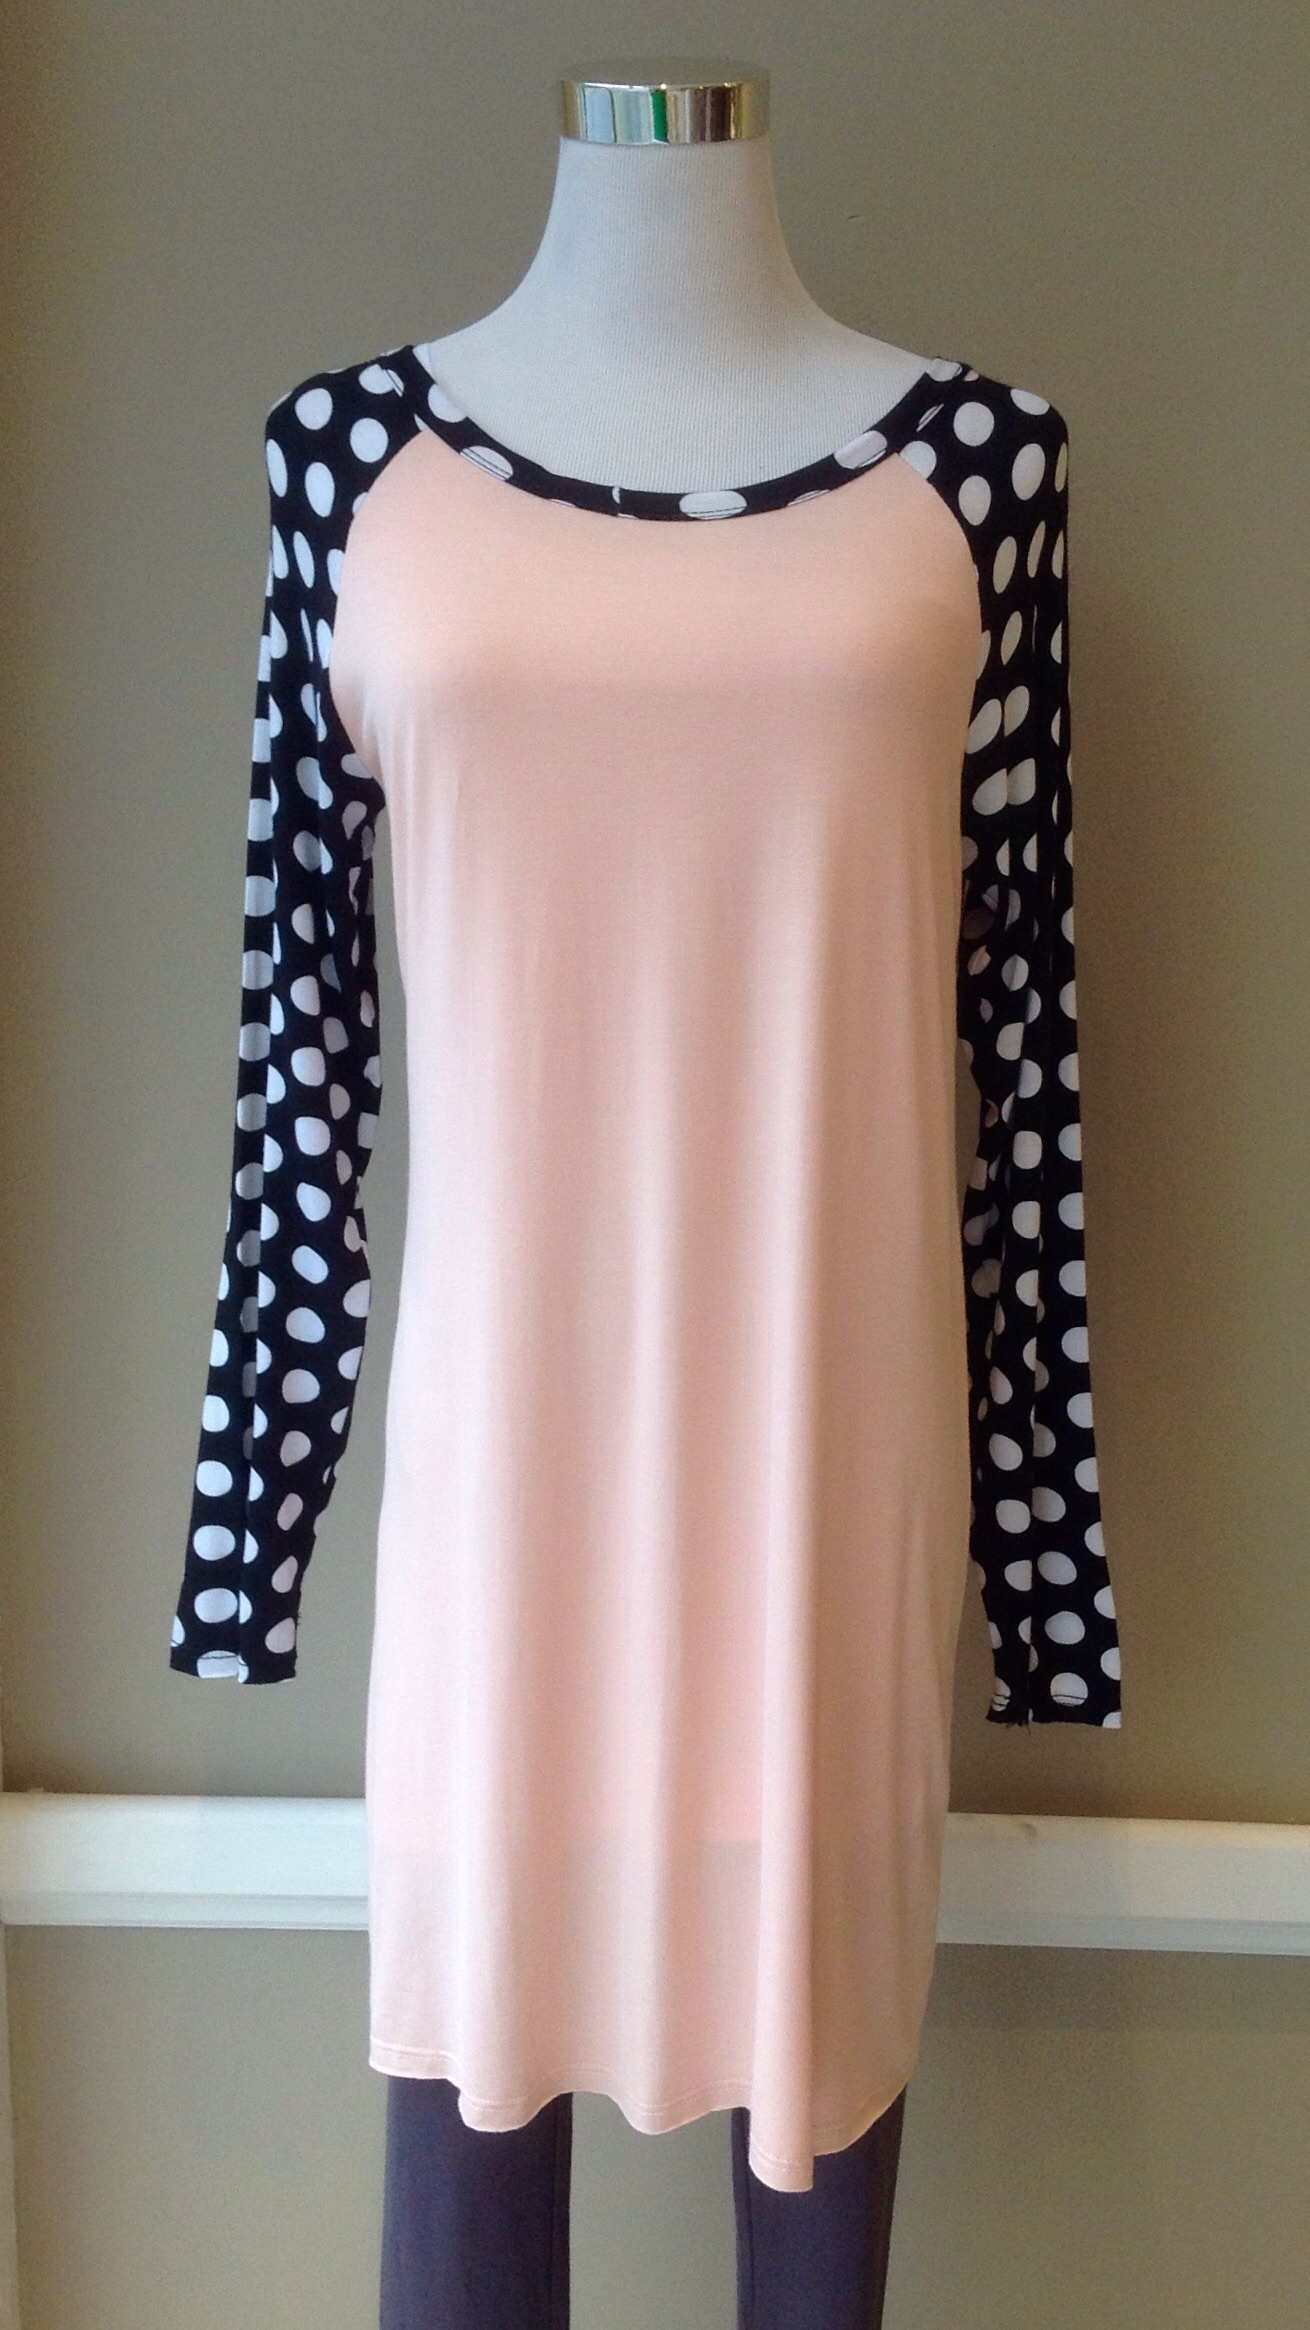 French terry baseball tunic dress in Black/White/Pink, $32